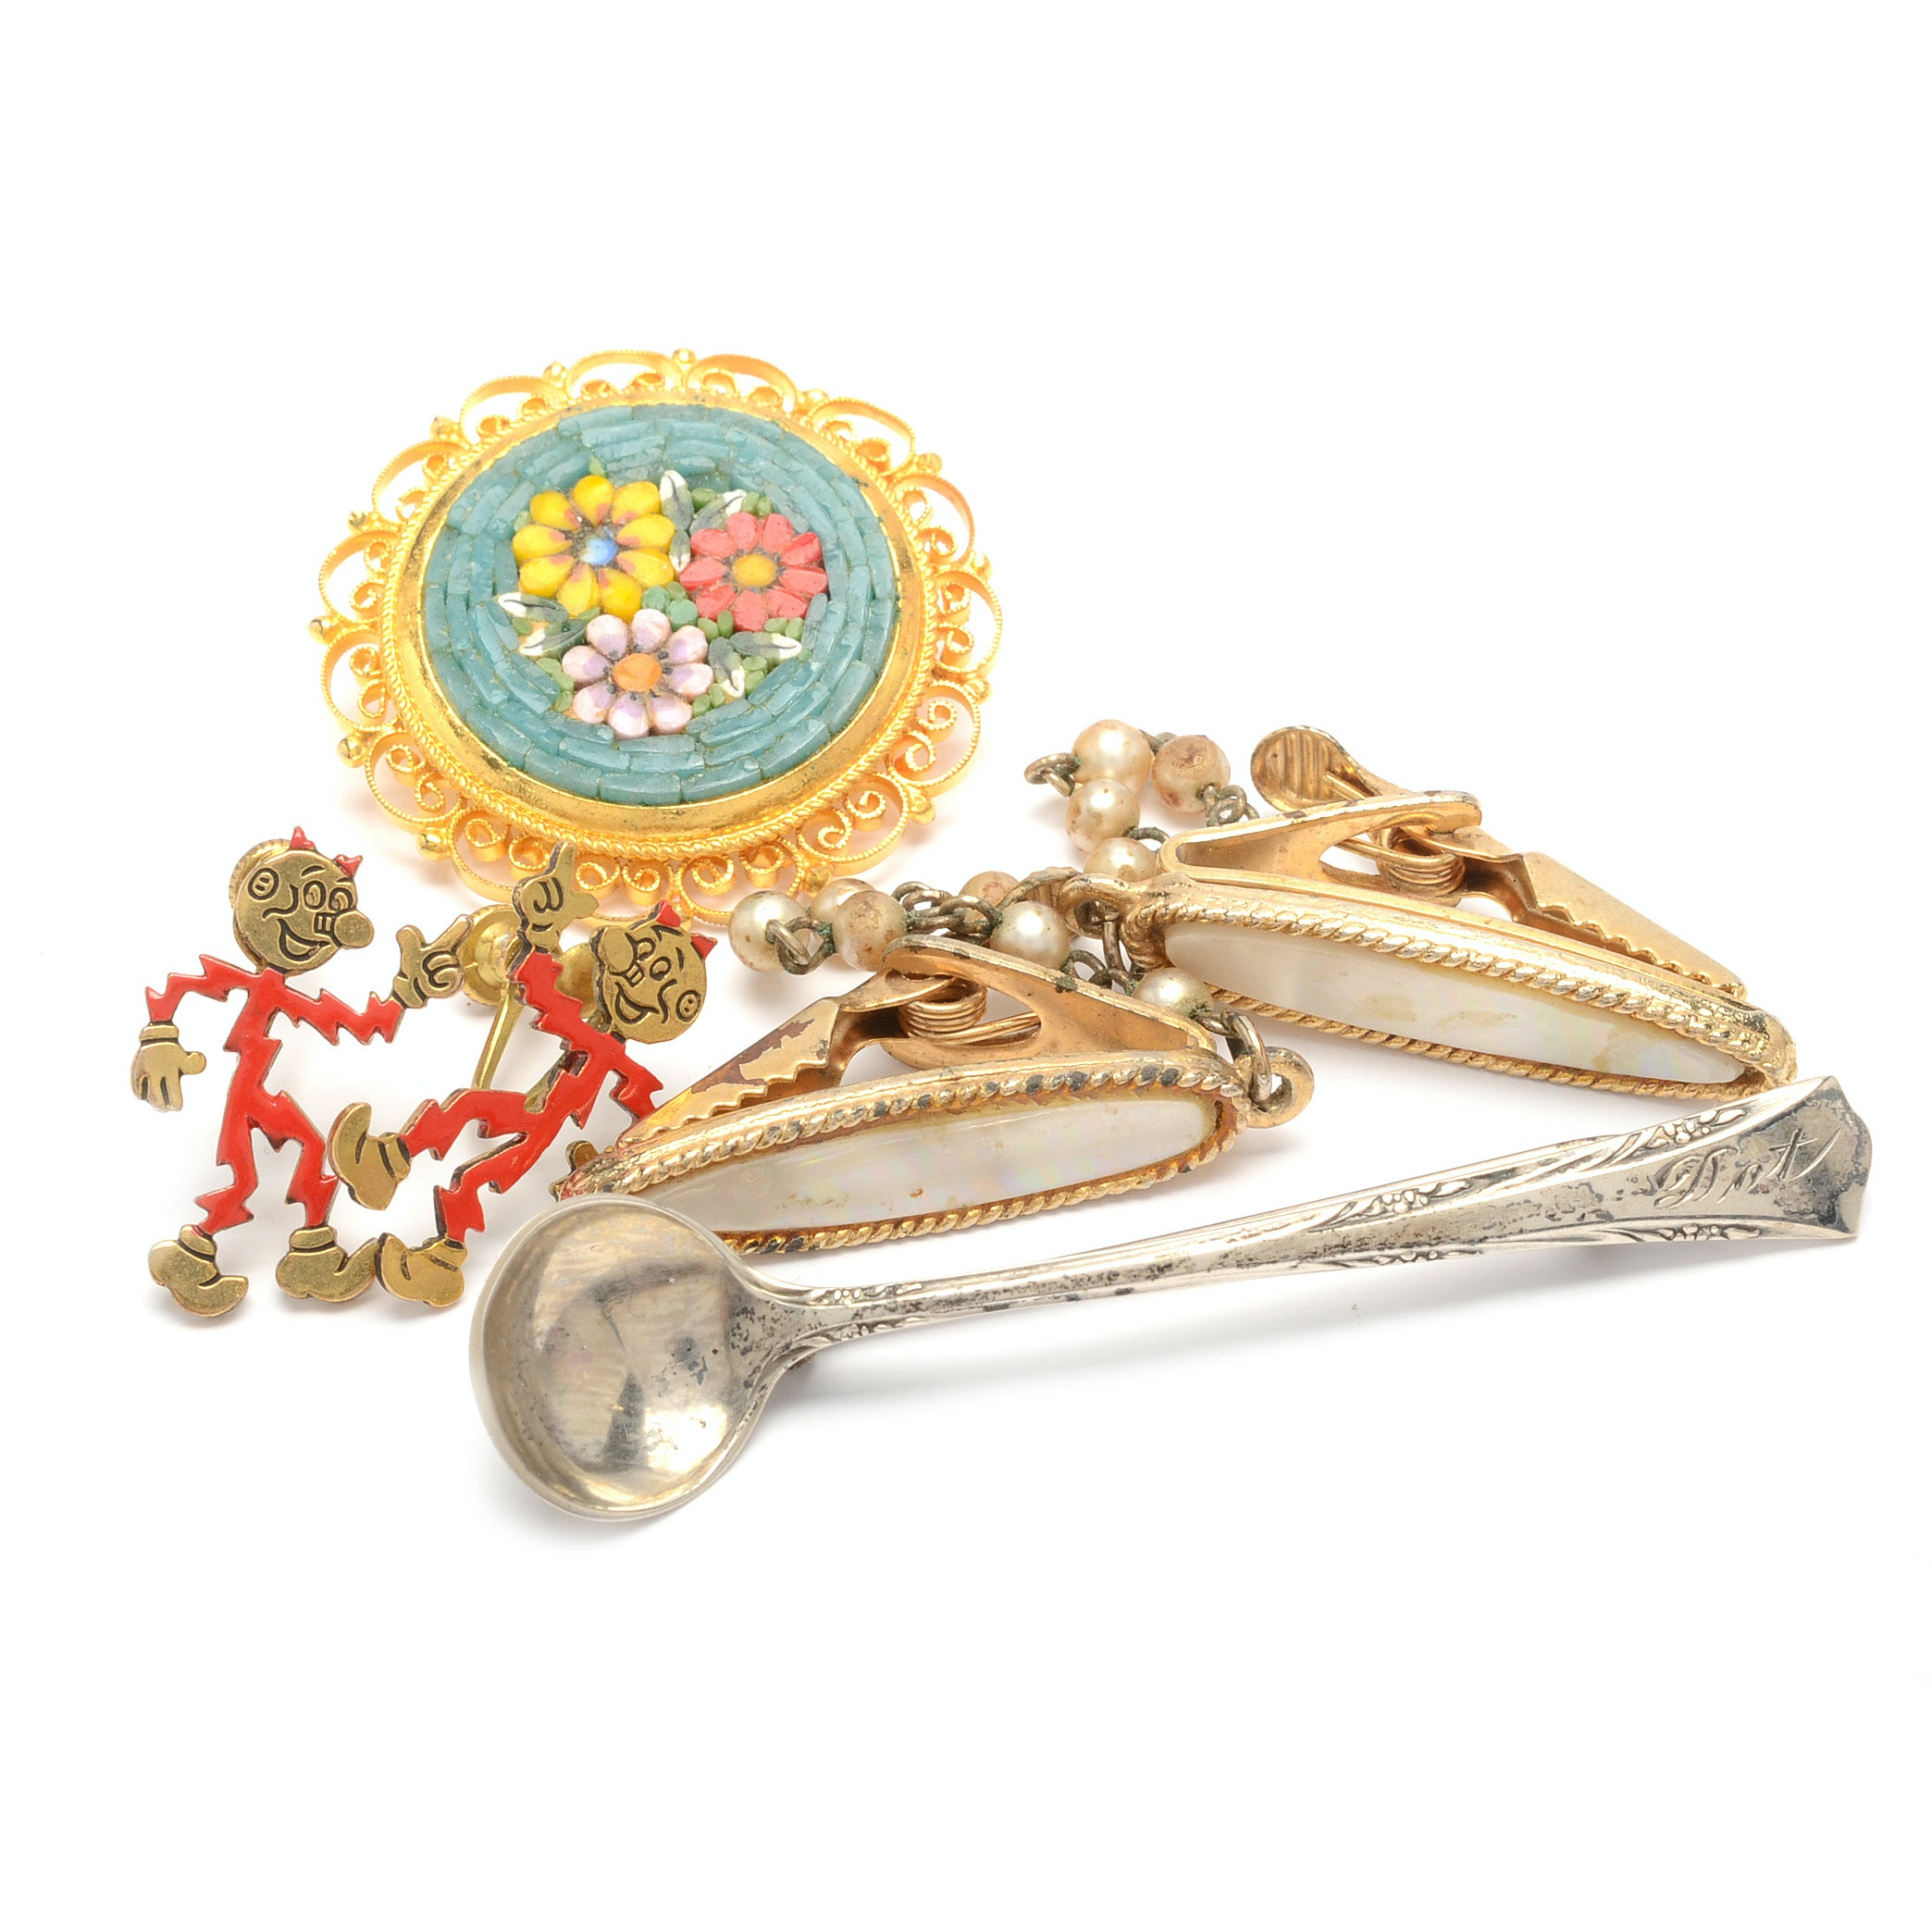 Selection of Gold Tone Jewelry with a Sterling Silver Spoon Pin